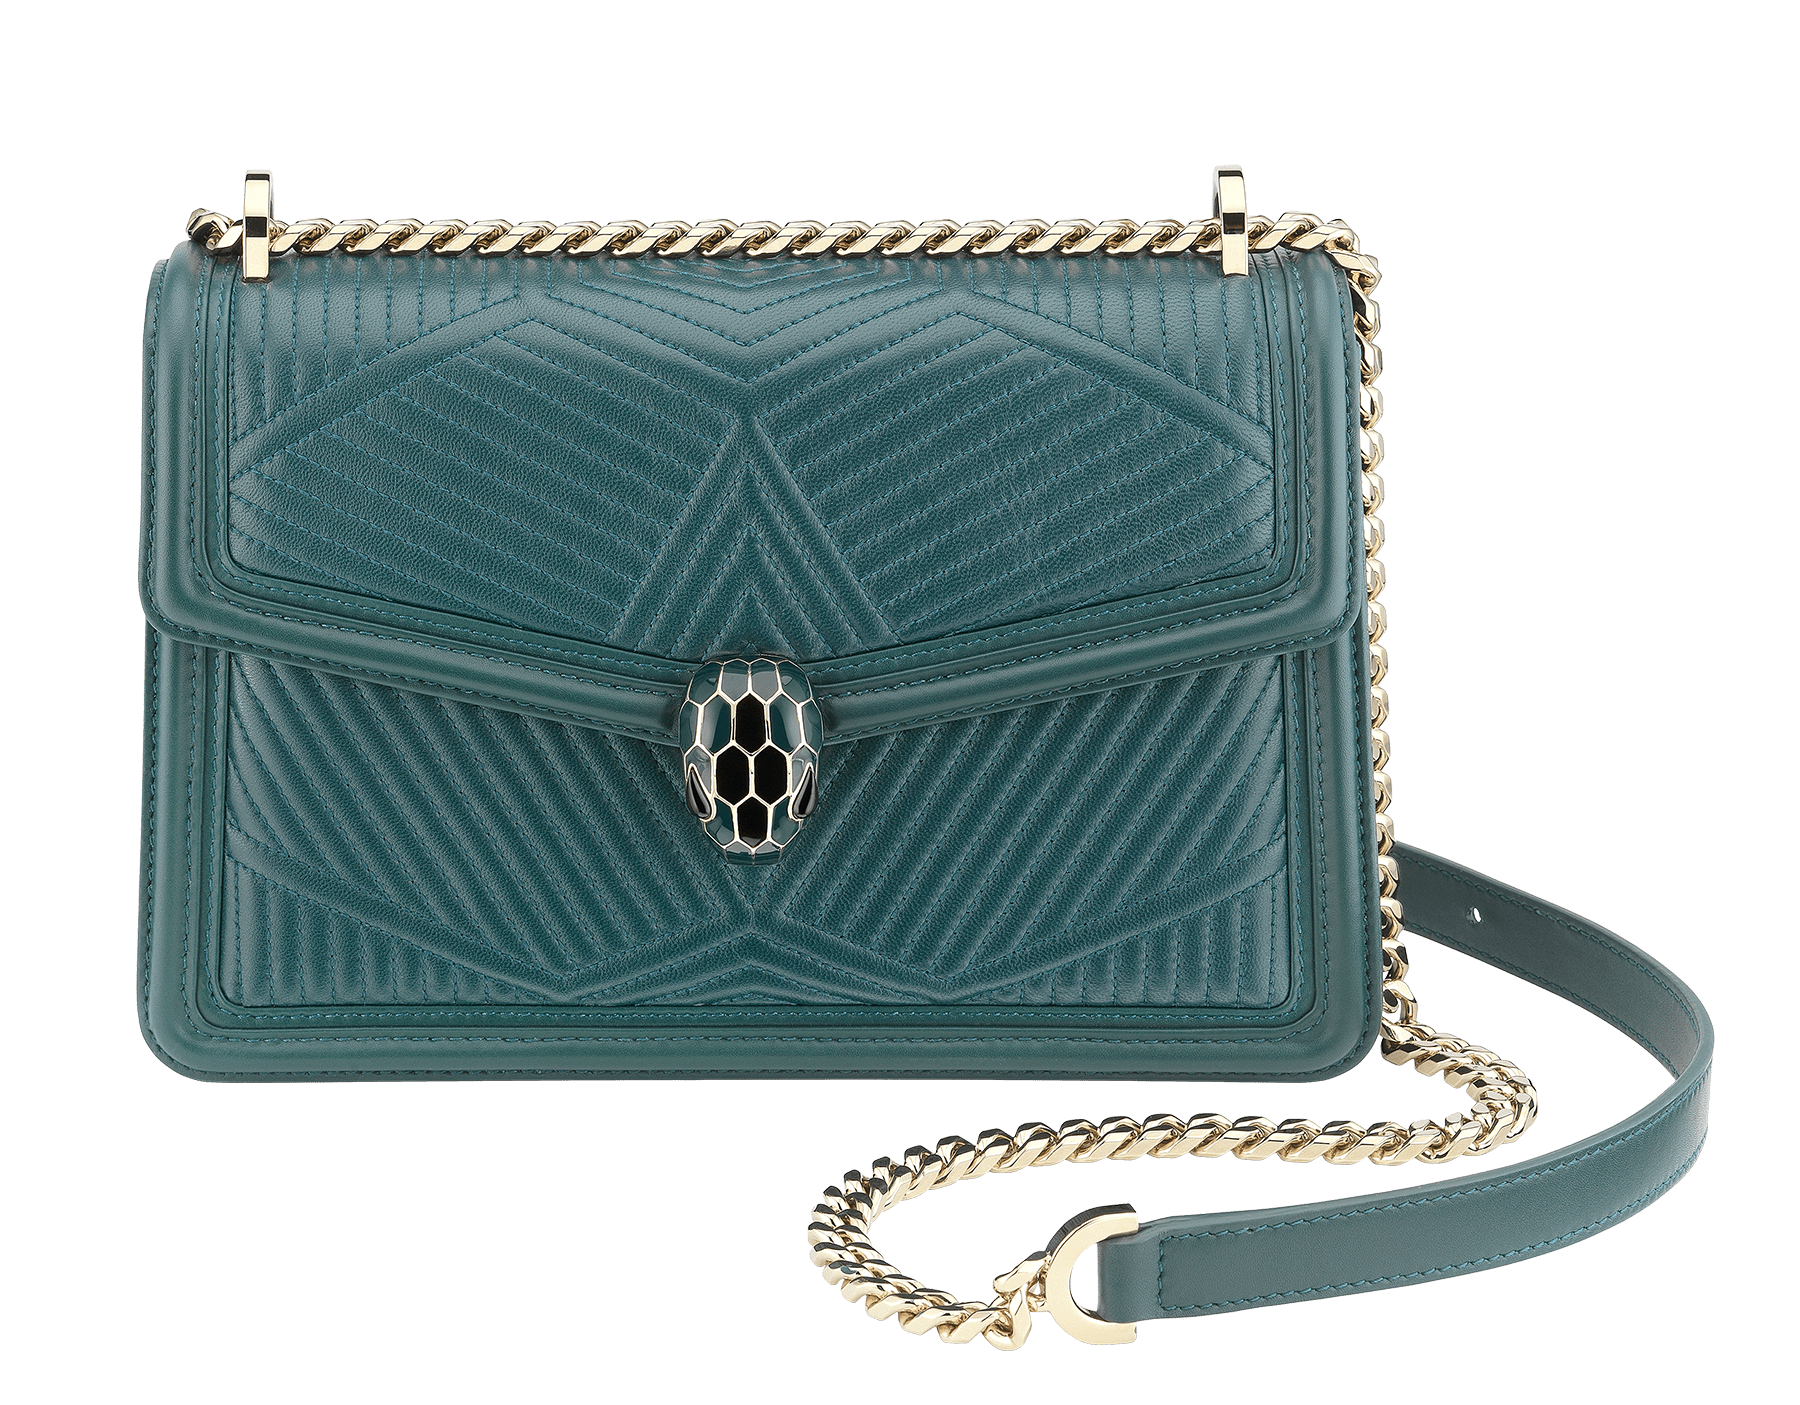 Serpenti Diamond Blast shoulder bag in forest emerald quilted nappa leather body and forest emerald calf leather frames. Snakehead closure in light gold plated brass decorated with forest emerald and black enamel, and black onyx eyes. 287850 image 1